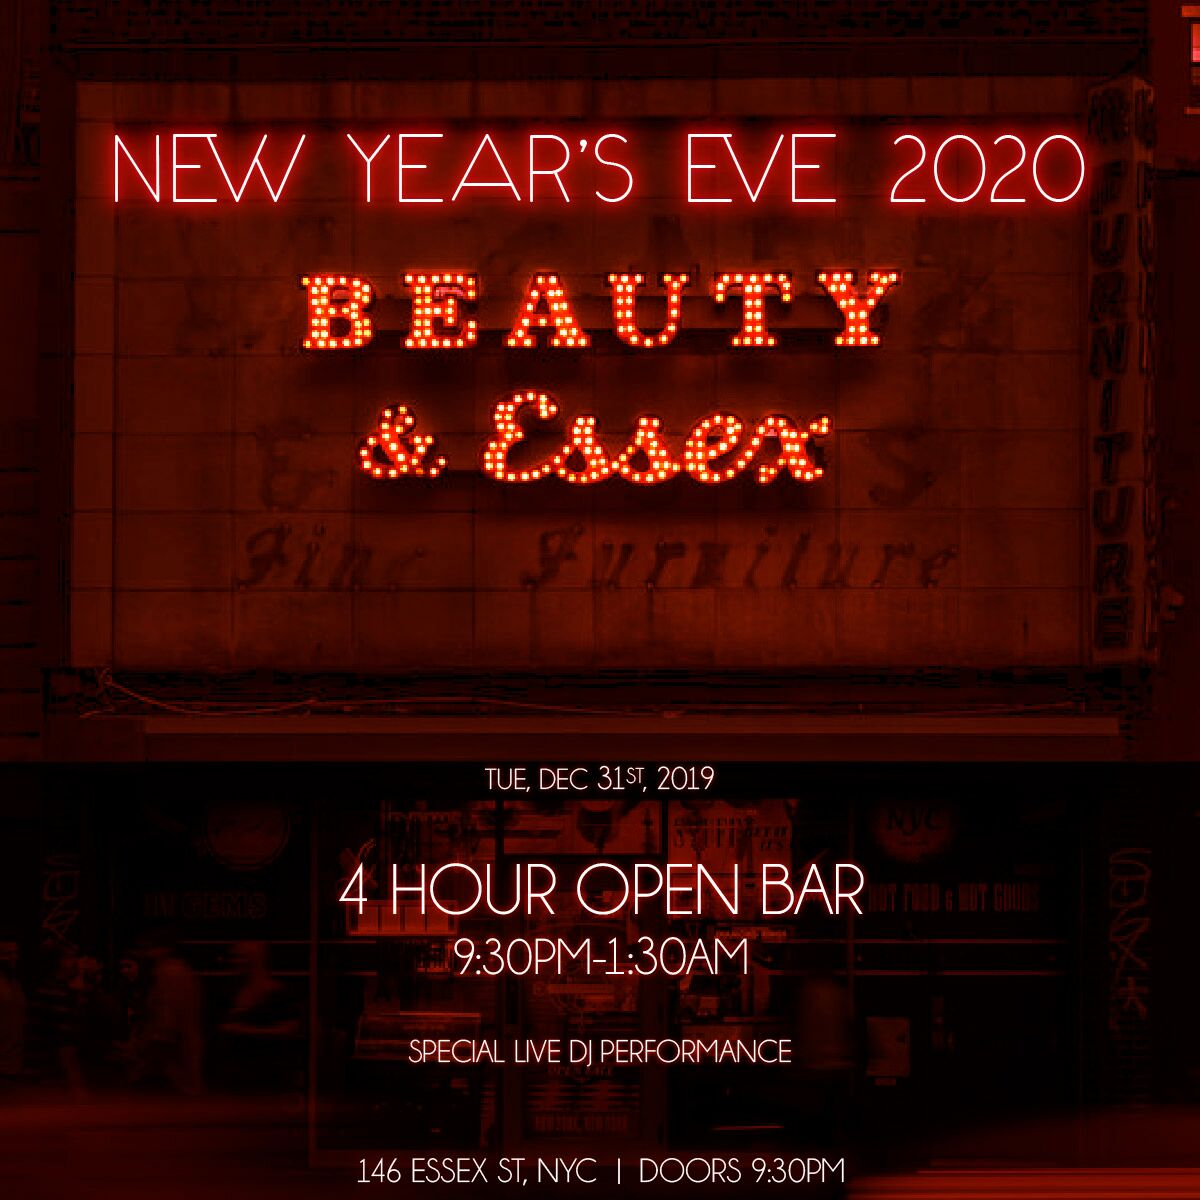 Beauty & Essex | VIP NYE Party | Buy Tickets Now